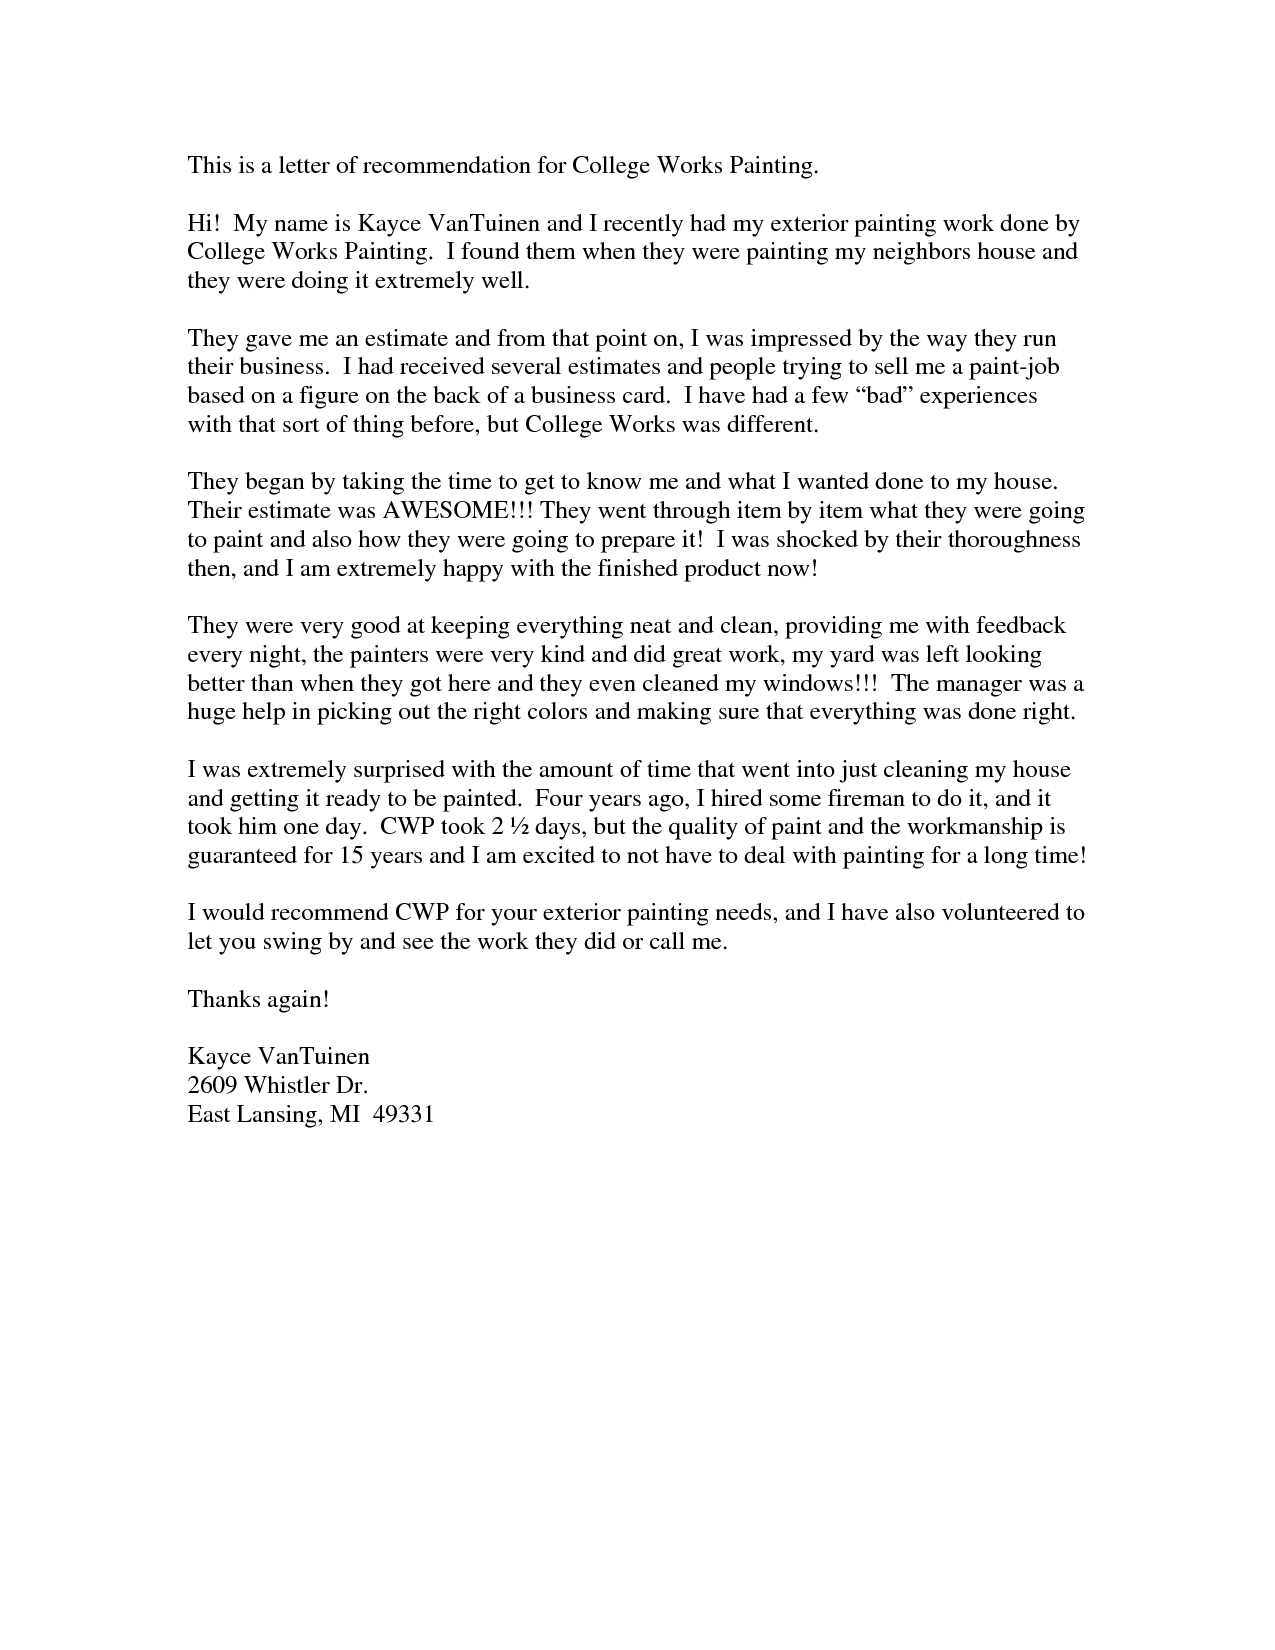 Recommendation Letter Examples. immigration recommendation letter